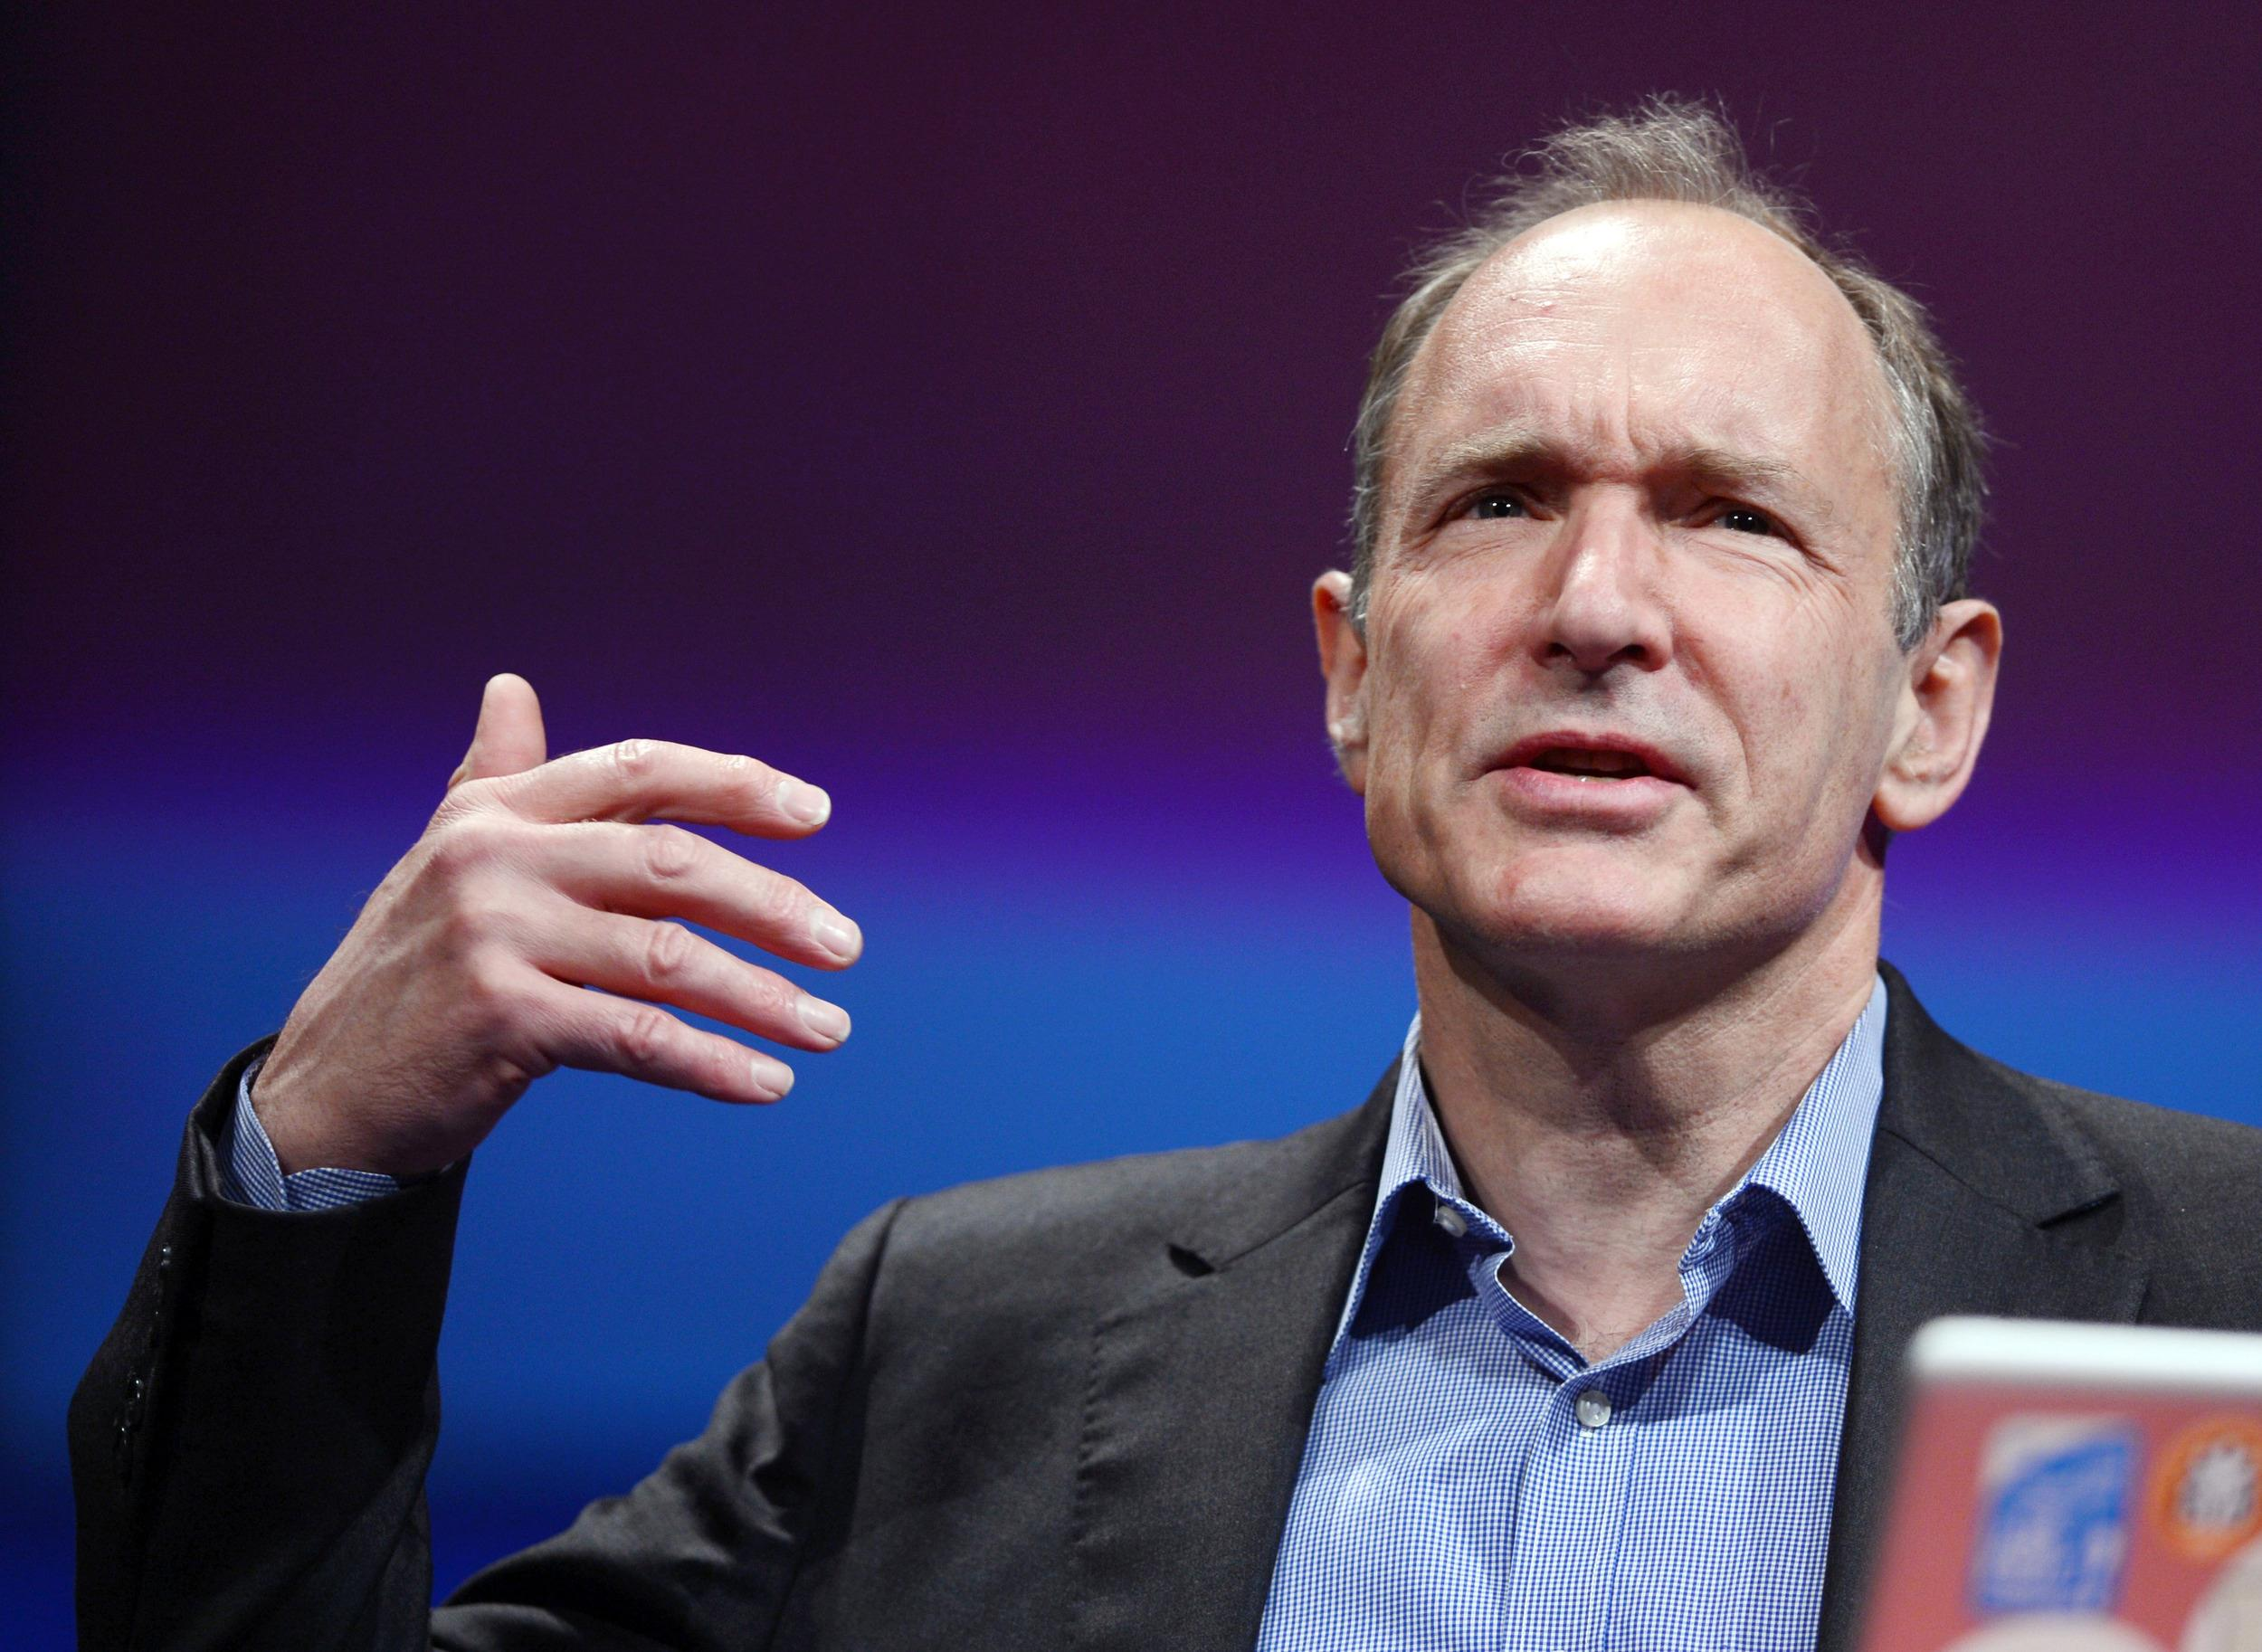 British computer scientist Tim Berners